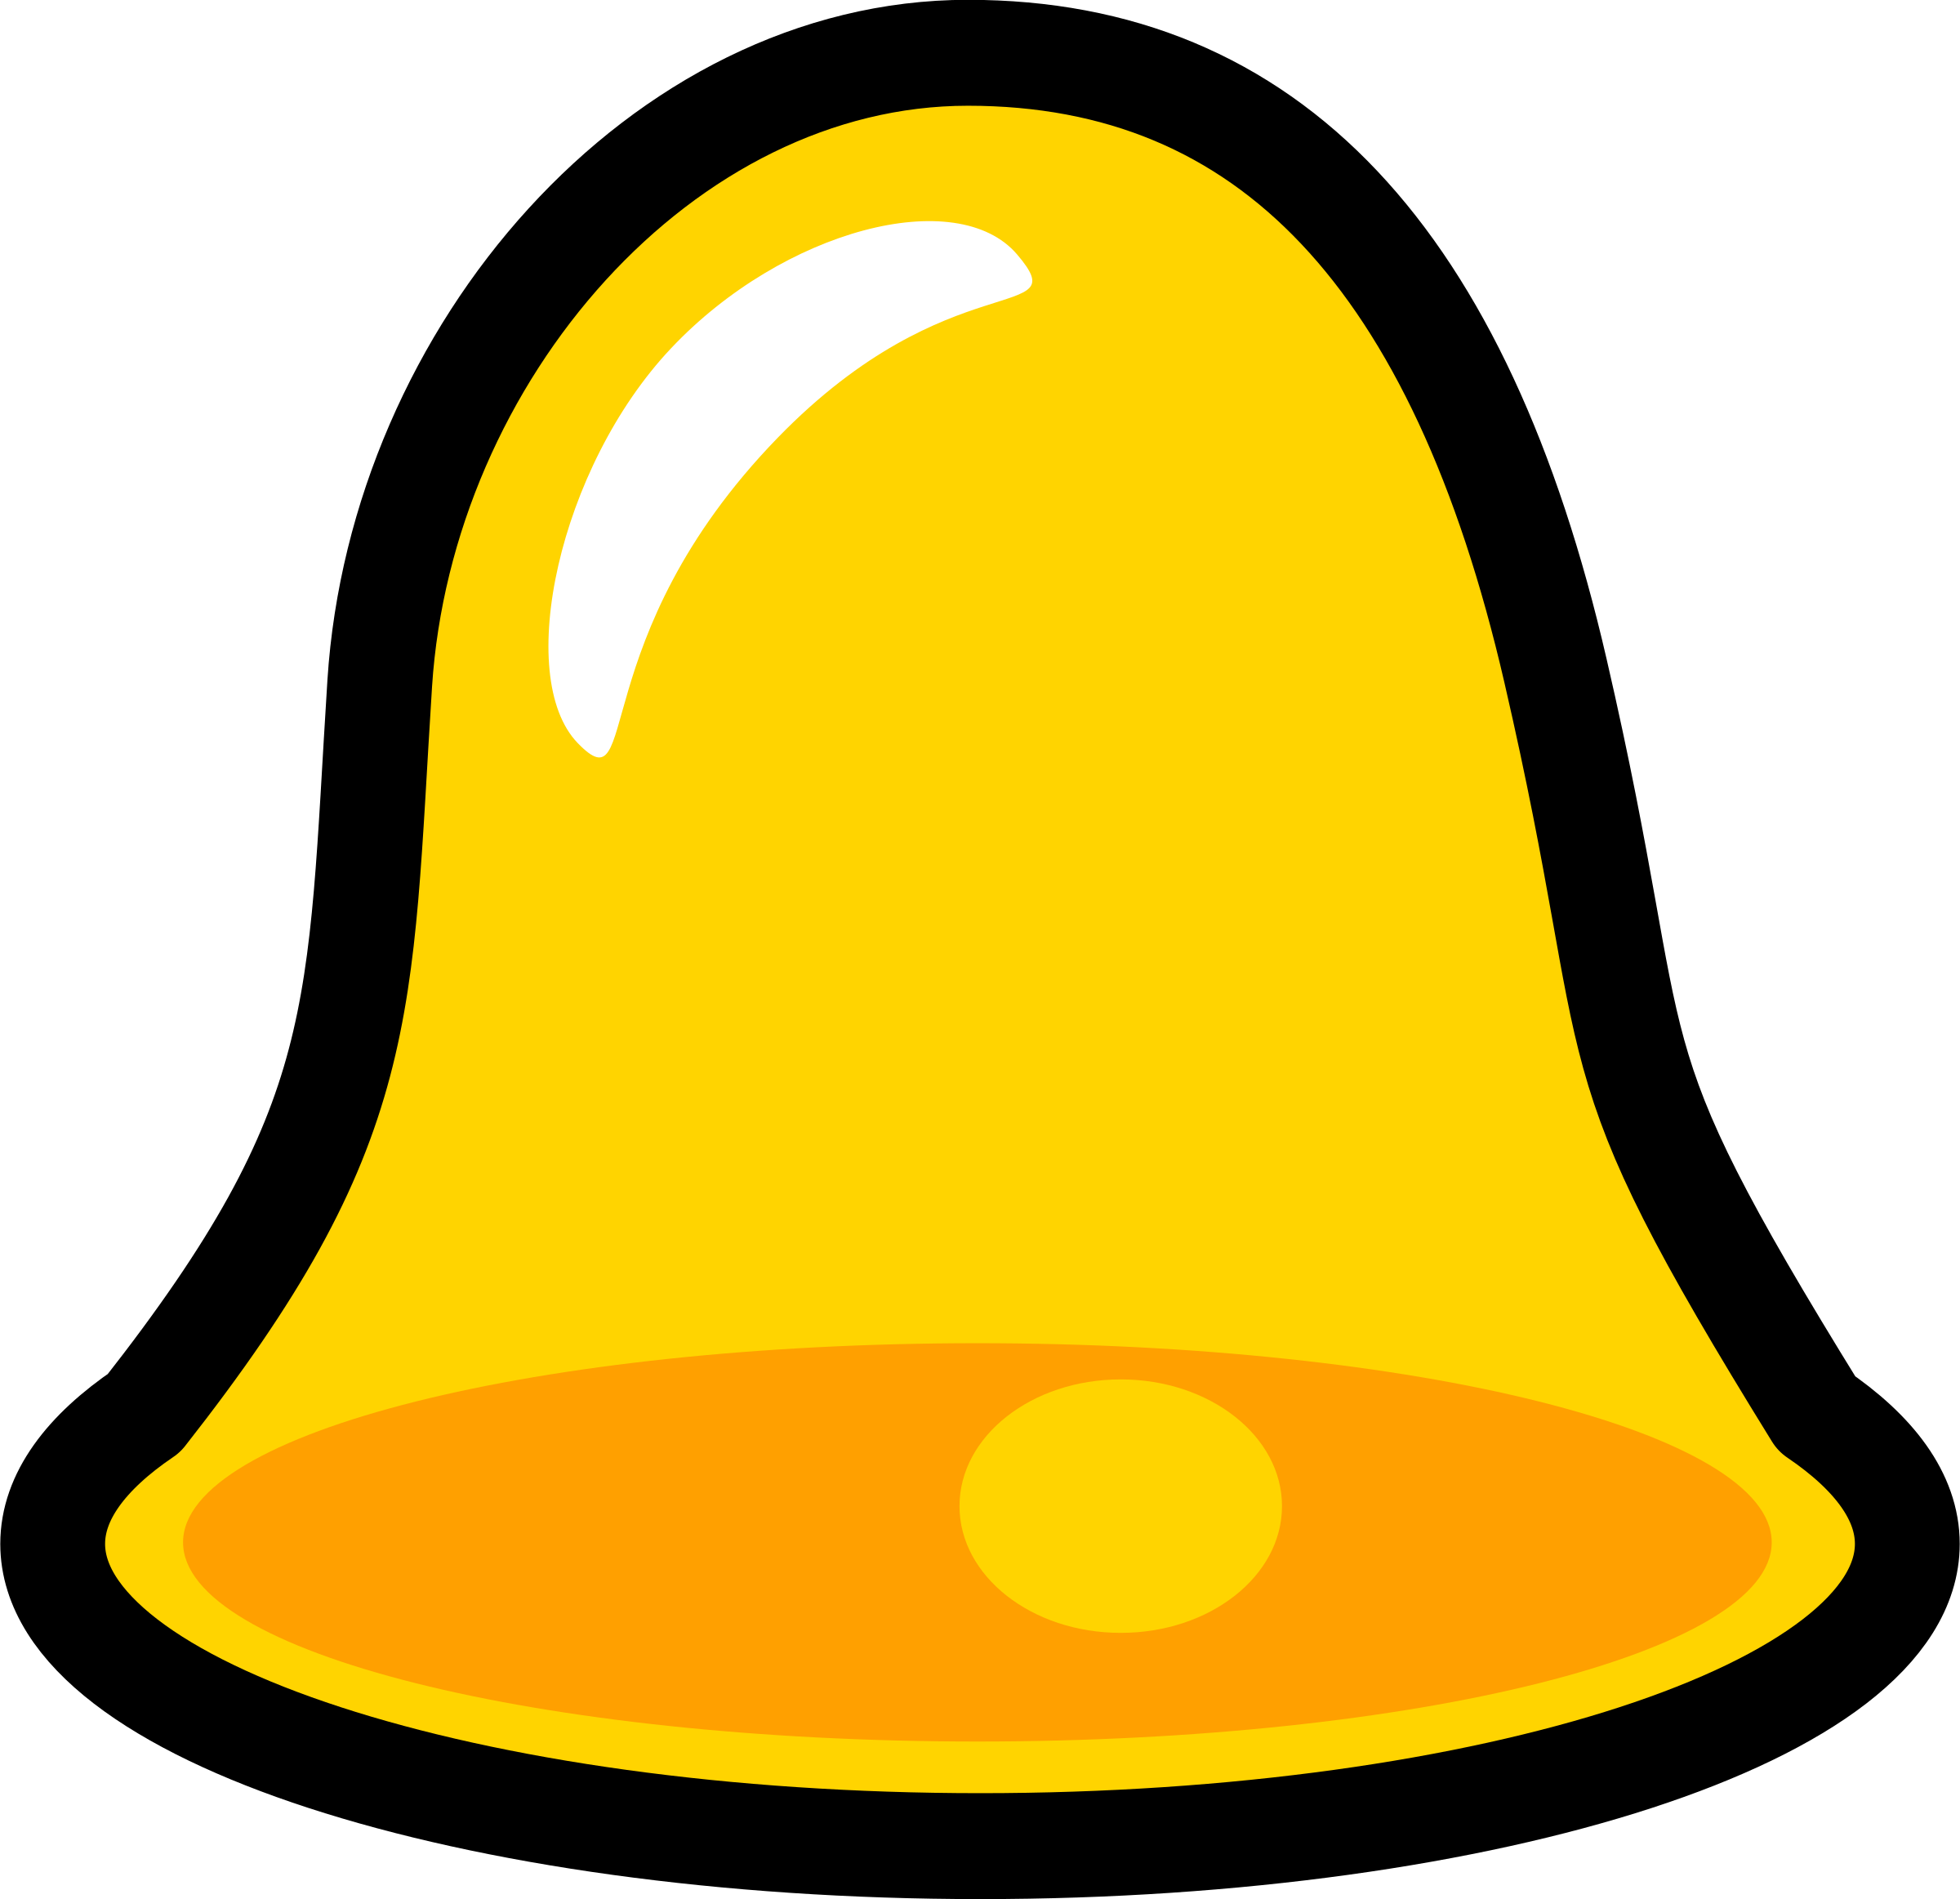 Vector Bell Drawing #16638.